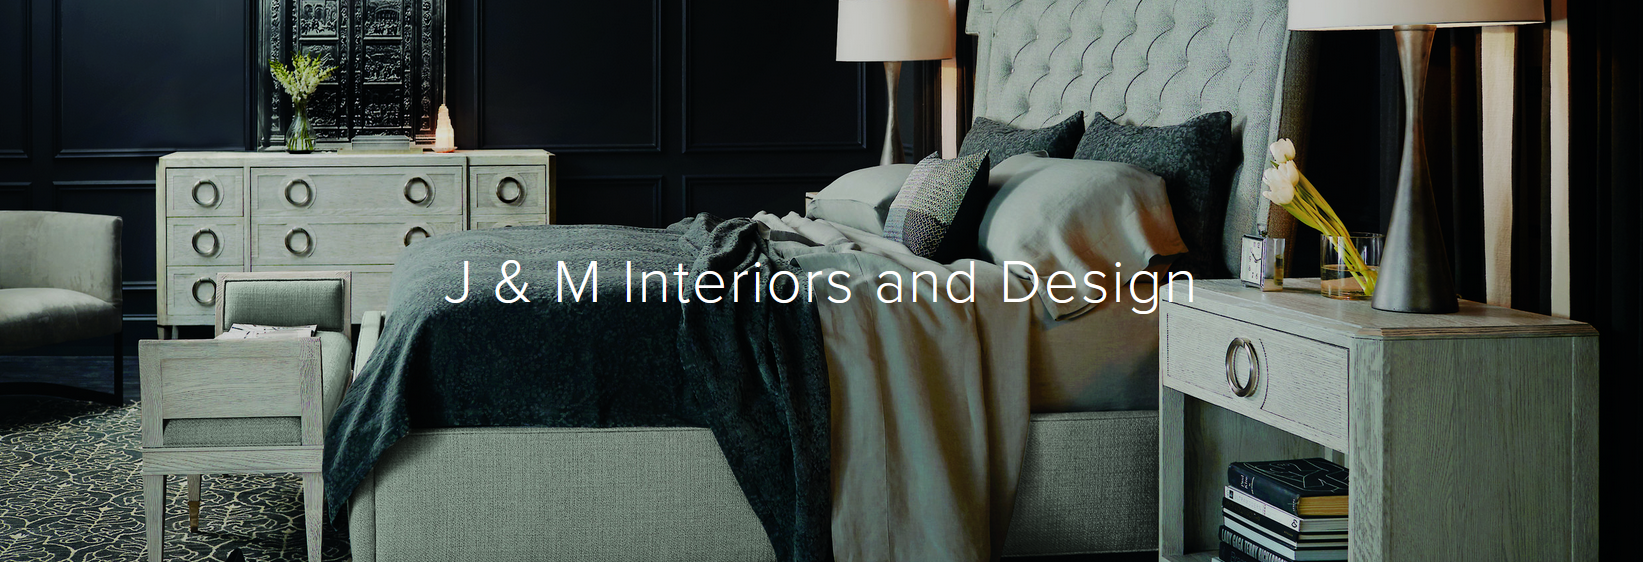 J & M Interiors and Design in Elyria, OH banner